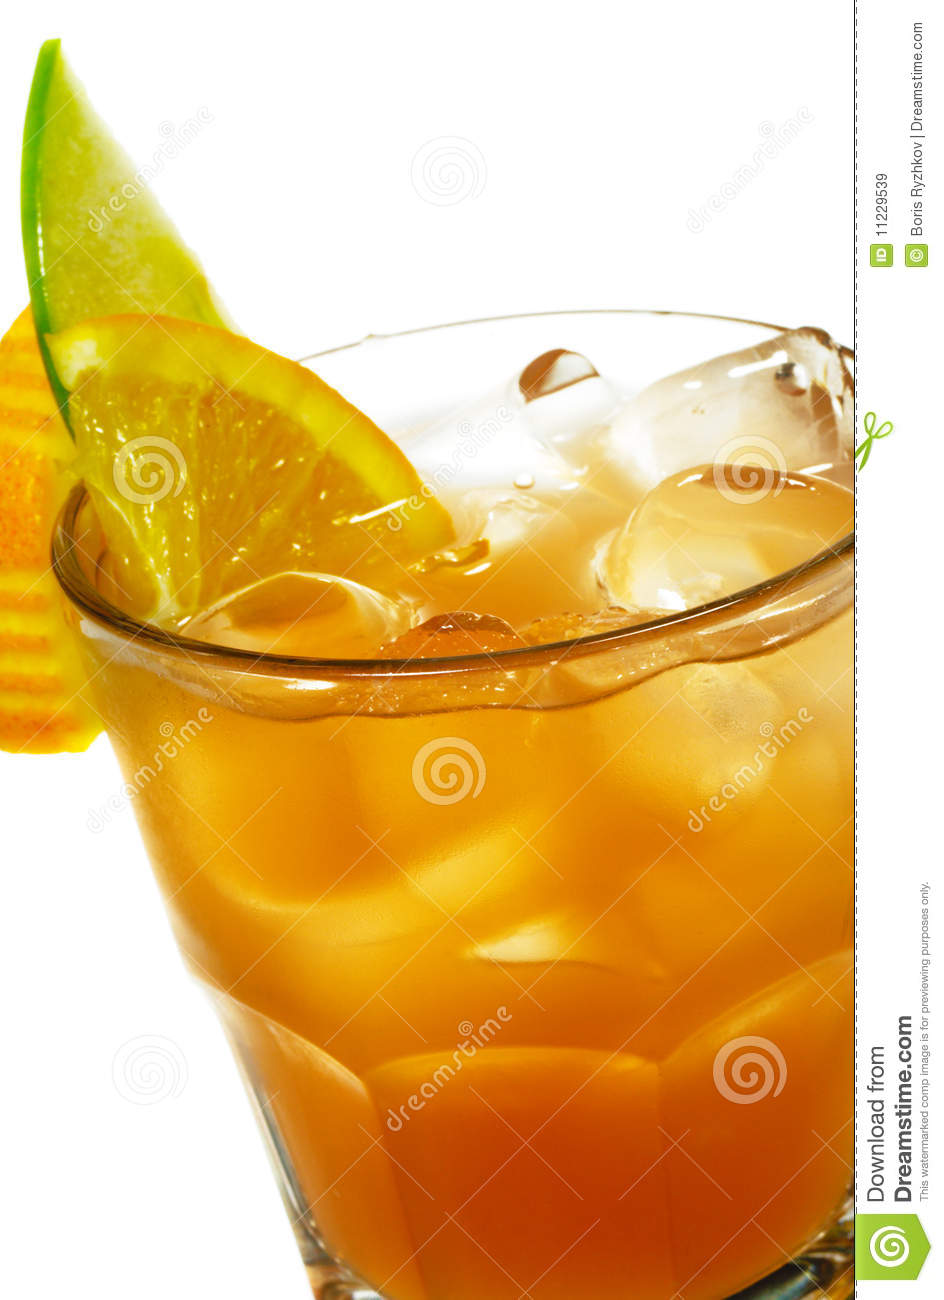 how to make alcohol from orange juice